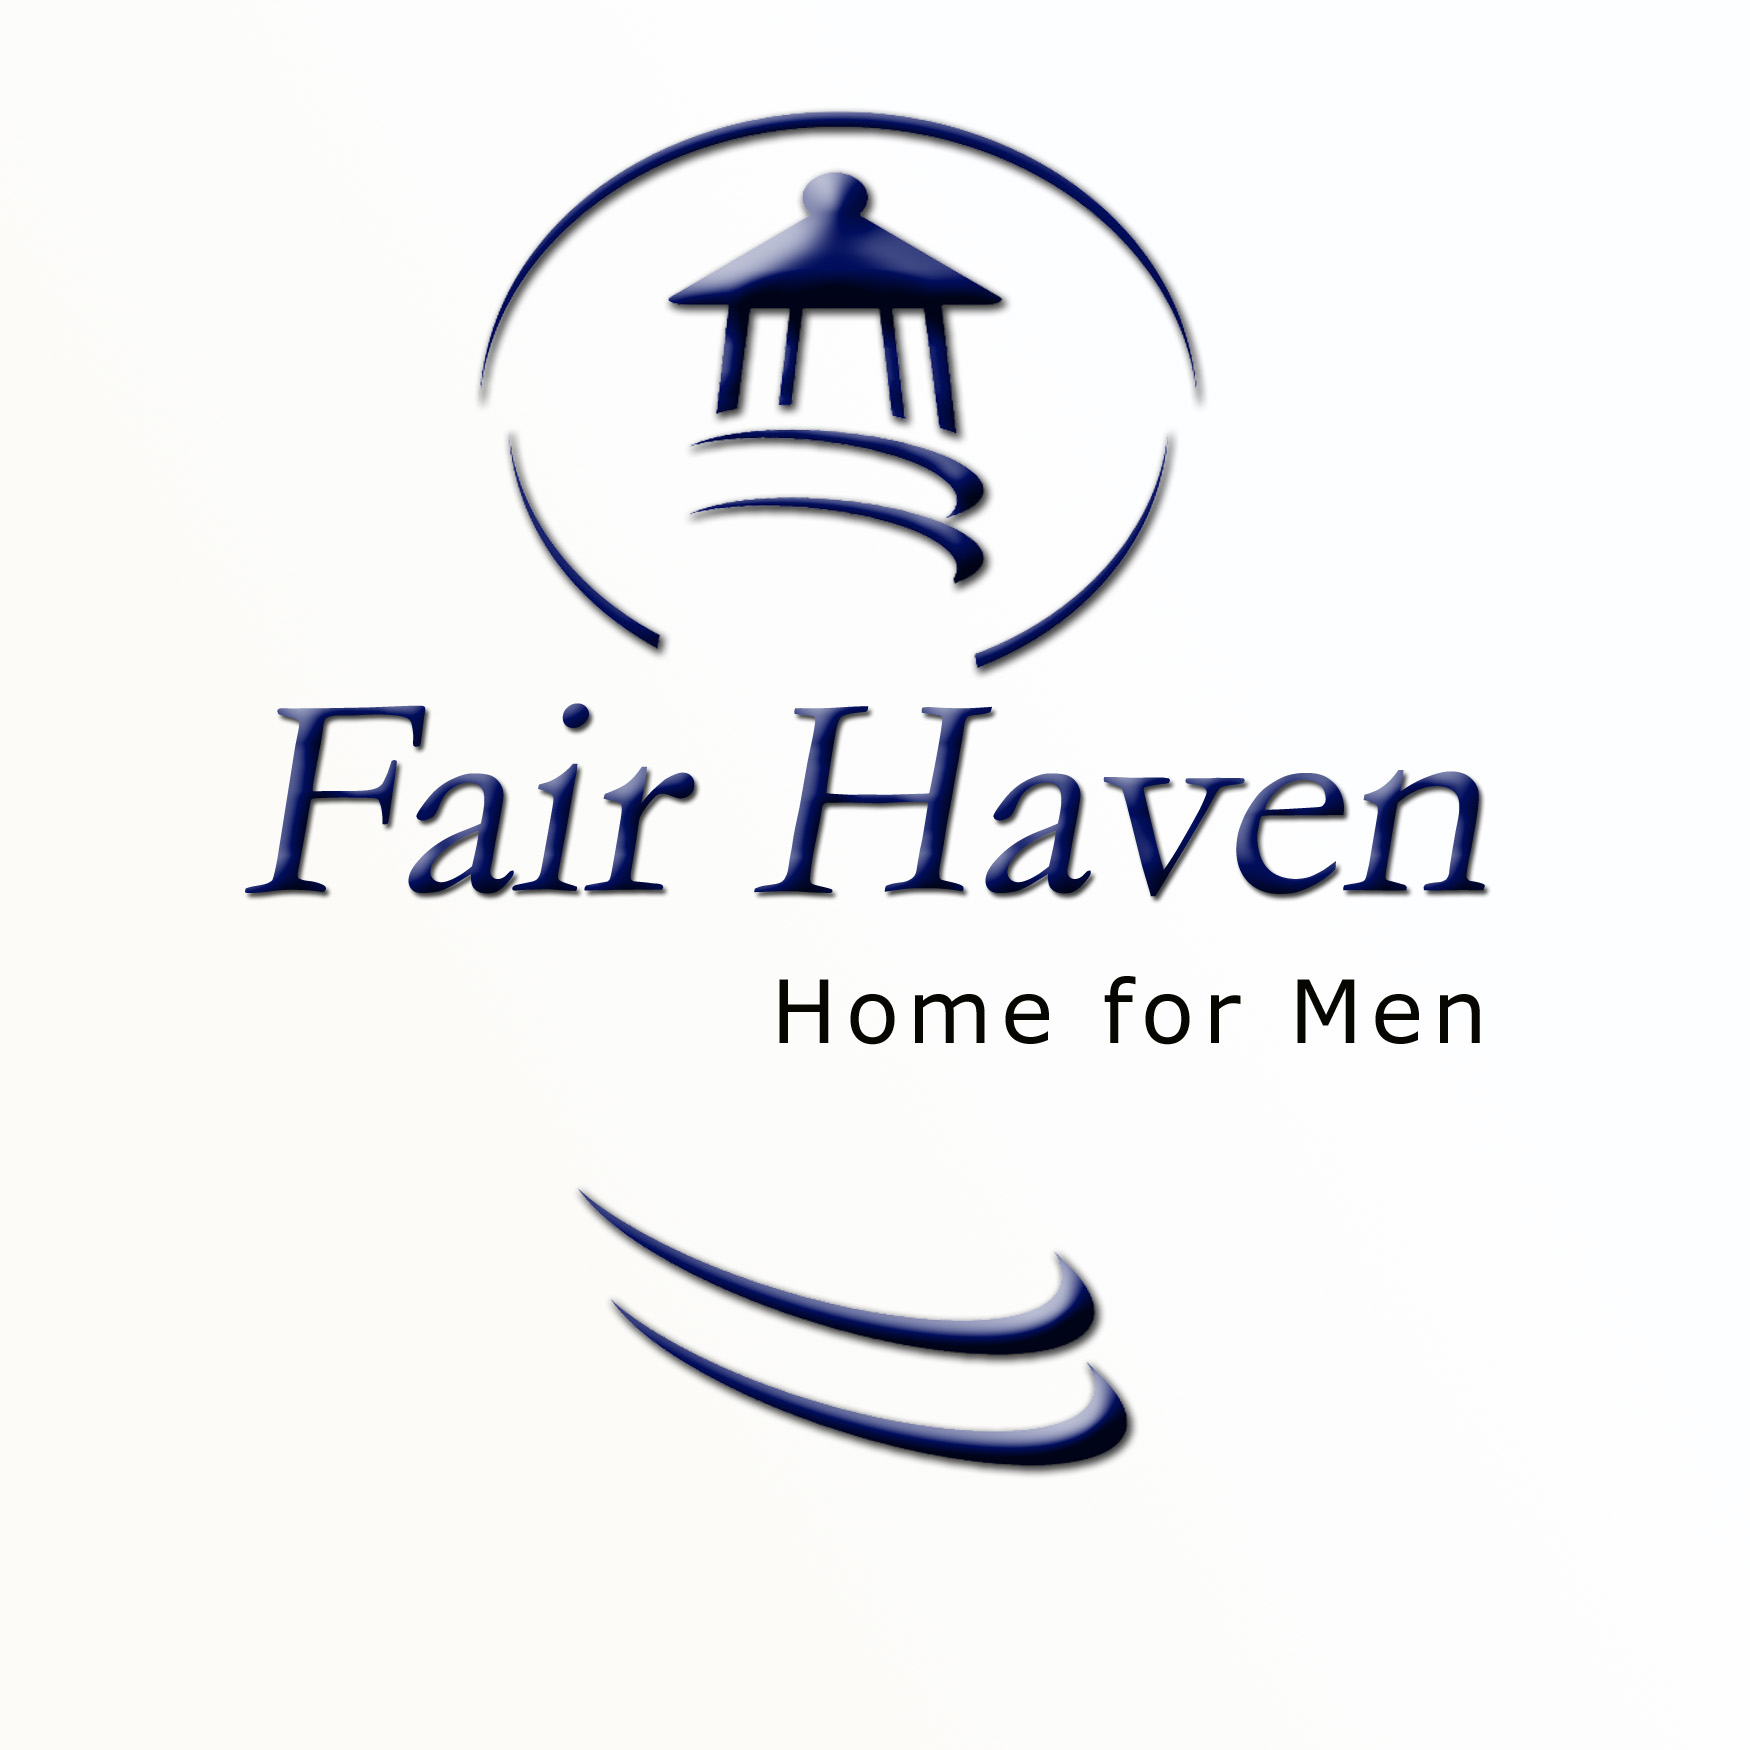 Fairhavenlogo